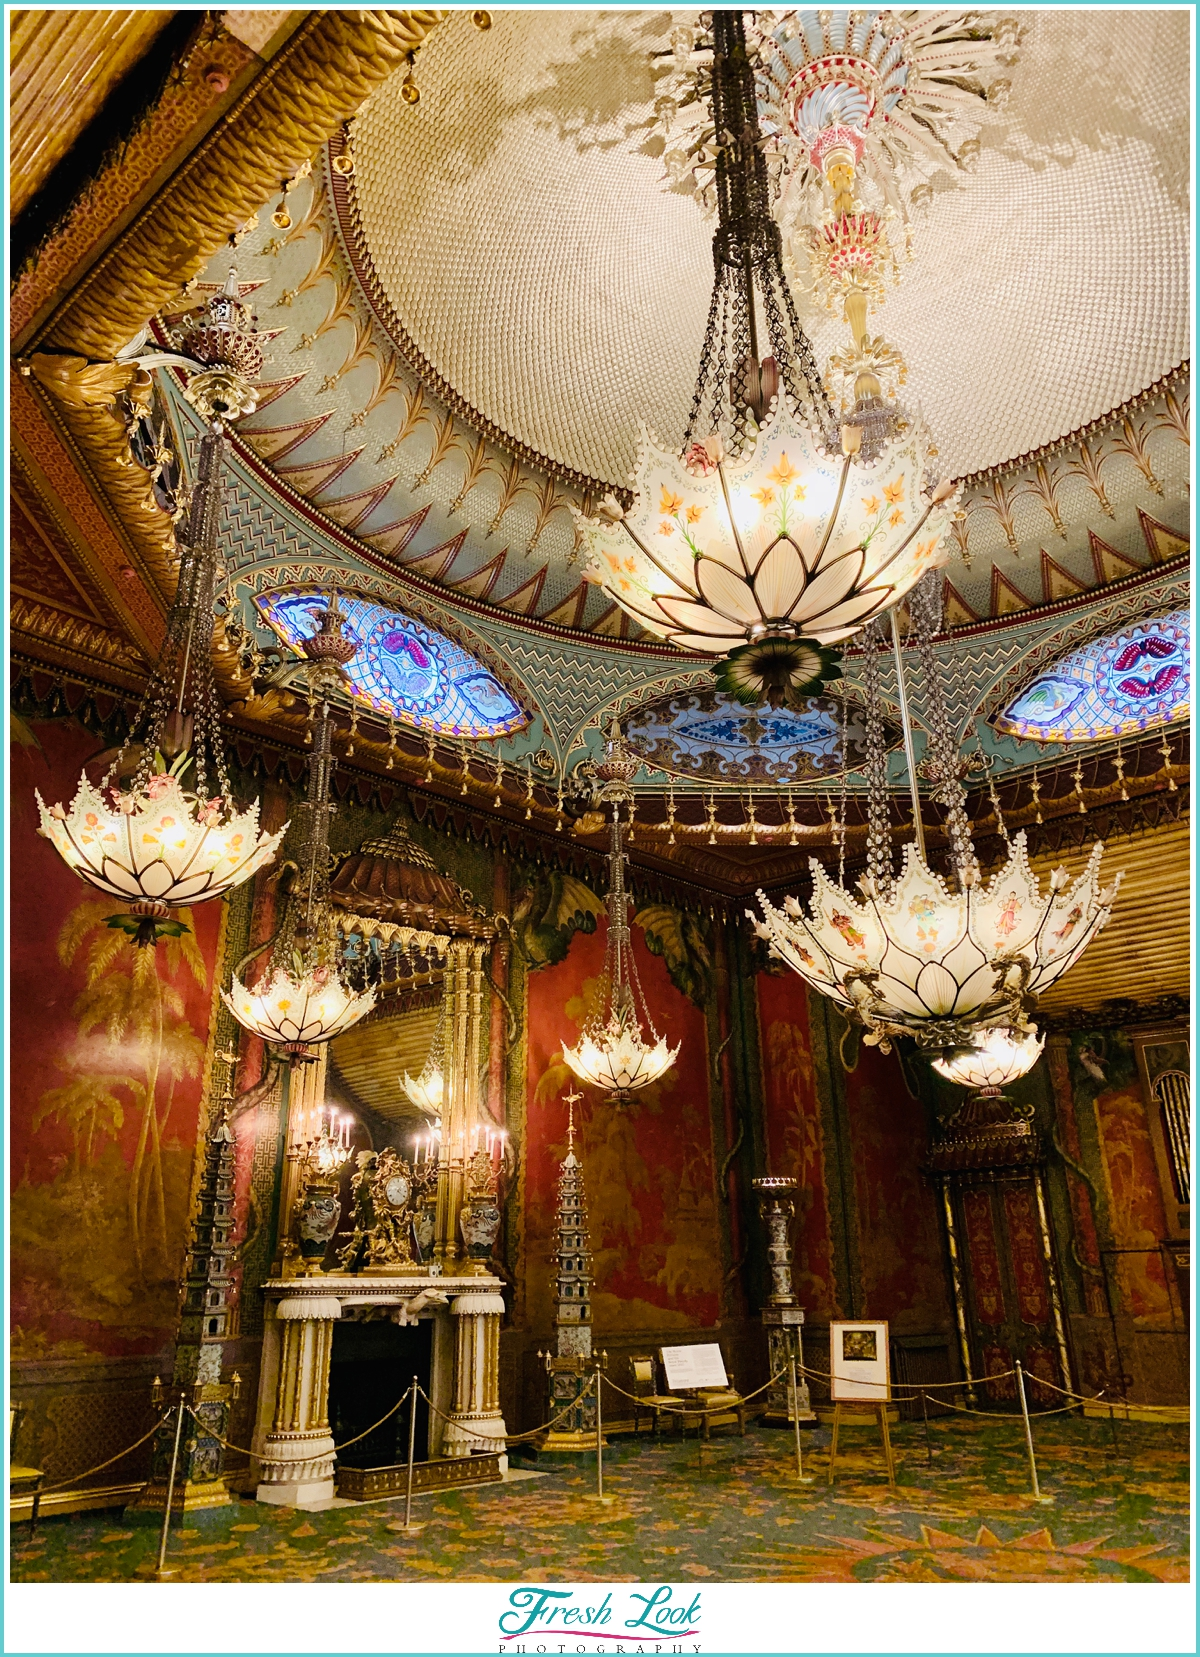 Amazing Chandeliers in the Royal Pavilion